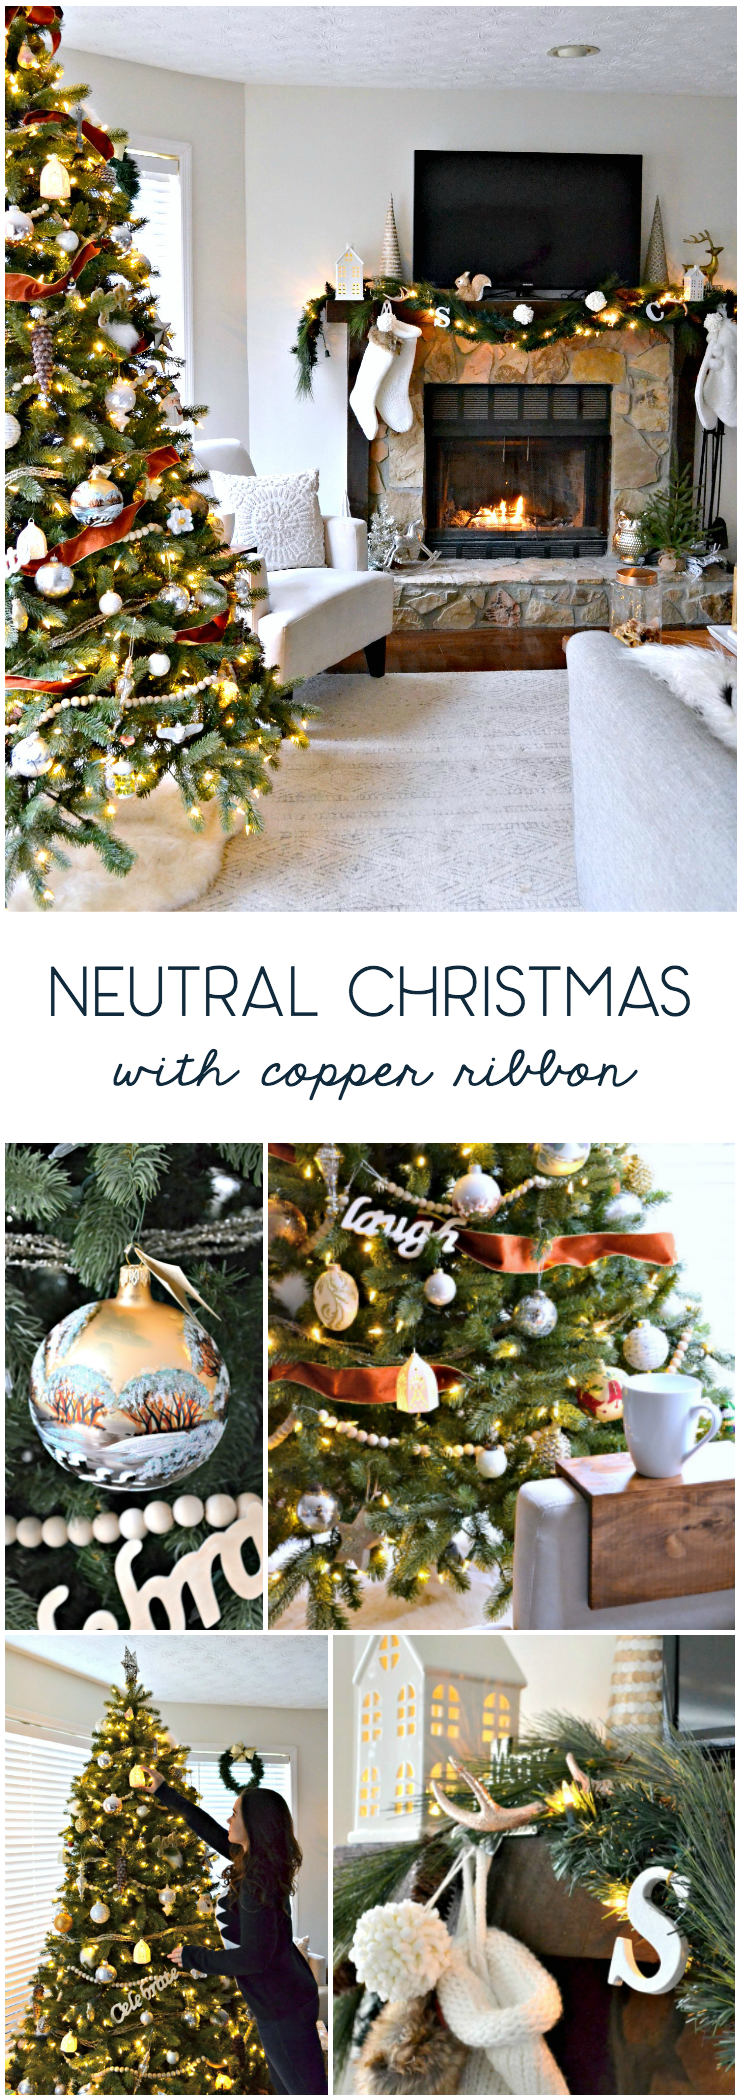 neutral christmas decor holiday home tour - living room - tree with velvet ribbon